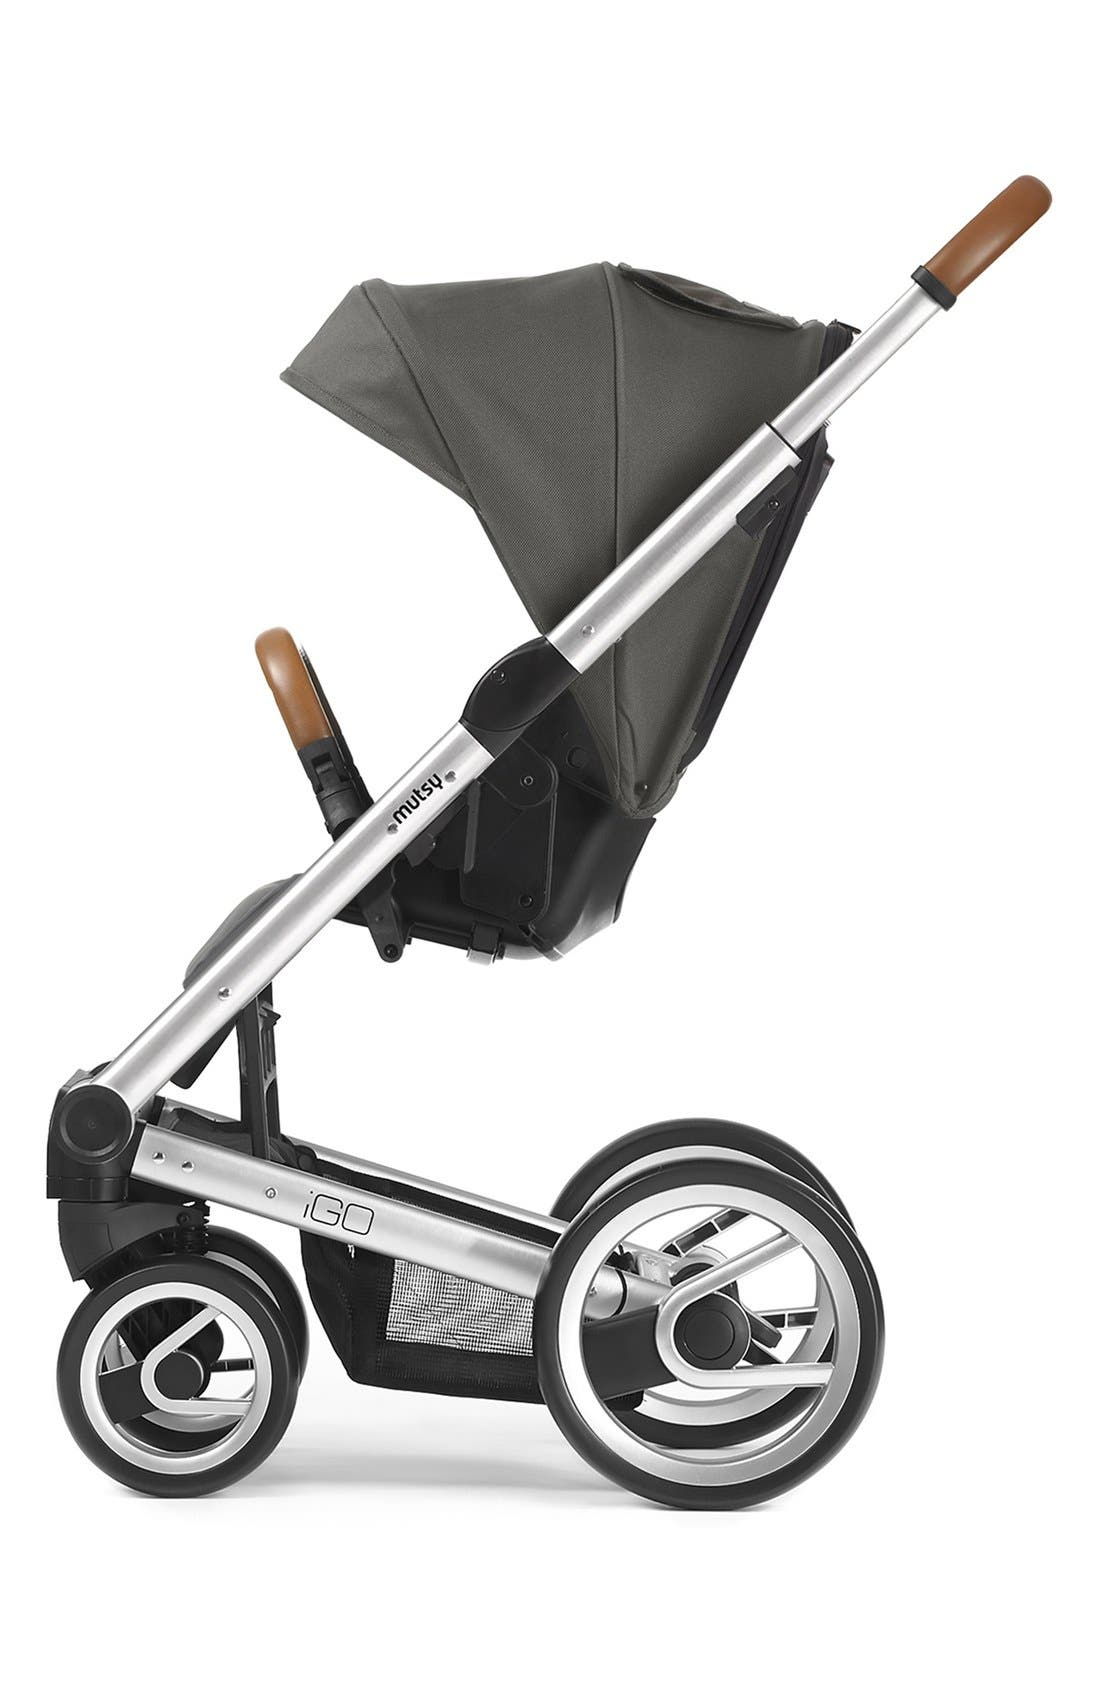 Igo - Urban Nomad Stroller,                         Main,                         color, Silver/ Dark Grey